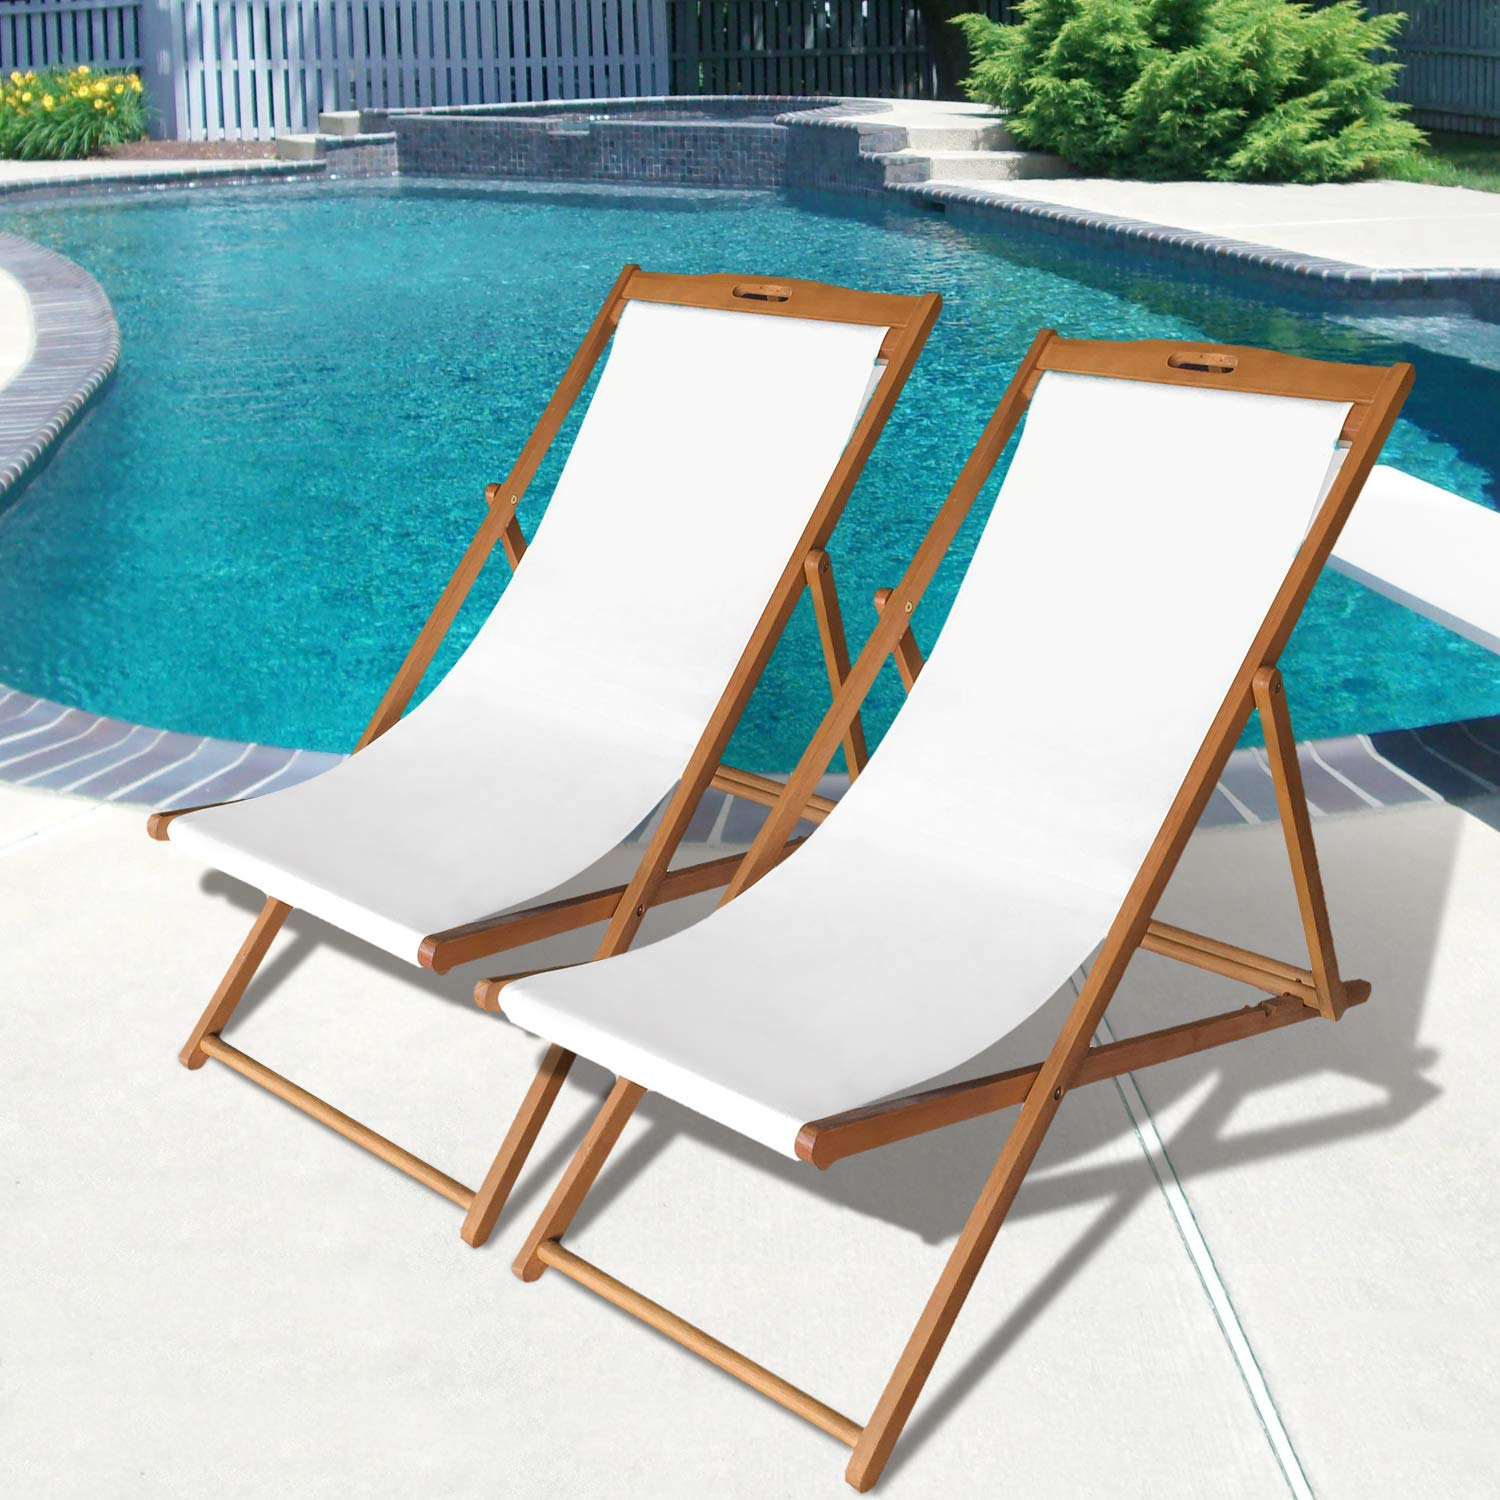 Beach Sling Chair Set Patio Lounge Chair Outdoor Reclining Beach Chair Wooden Folding Adjustable Frame Solid Eucalyptus Wood with White Polyester Canvas 3 Level Height Portable Set of 2,Natural Oiled by FDW